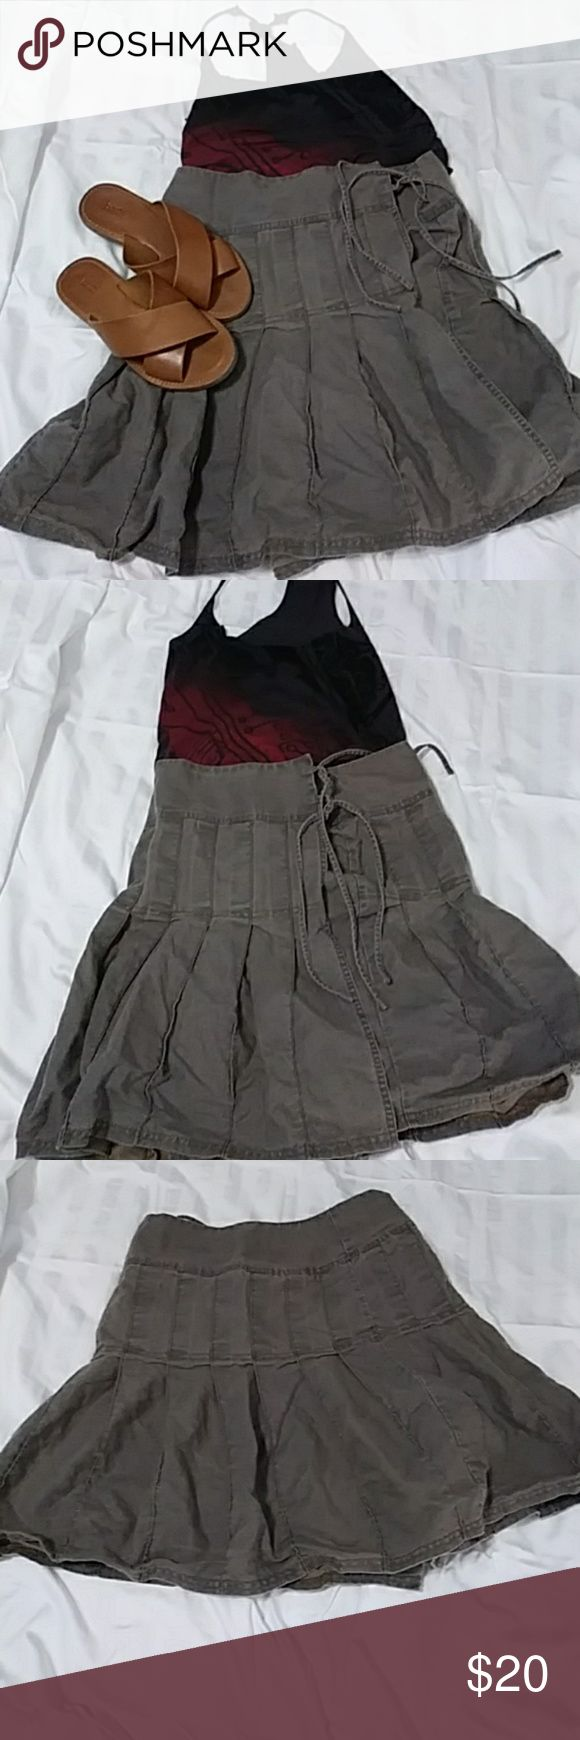 American eagle casual skirt! Very comfy wrap skirt. Buttons on inside and ties on side. Navy green . linen/cotton material American Eagle Outfitters Skirts Circle & Skater